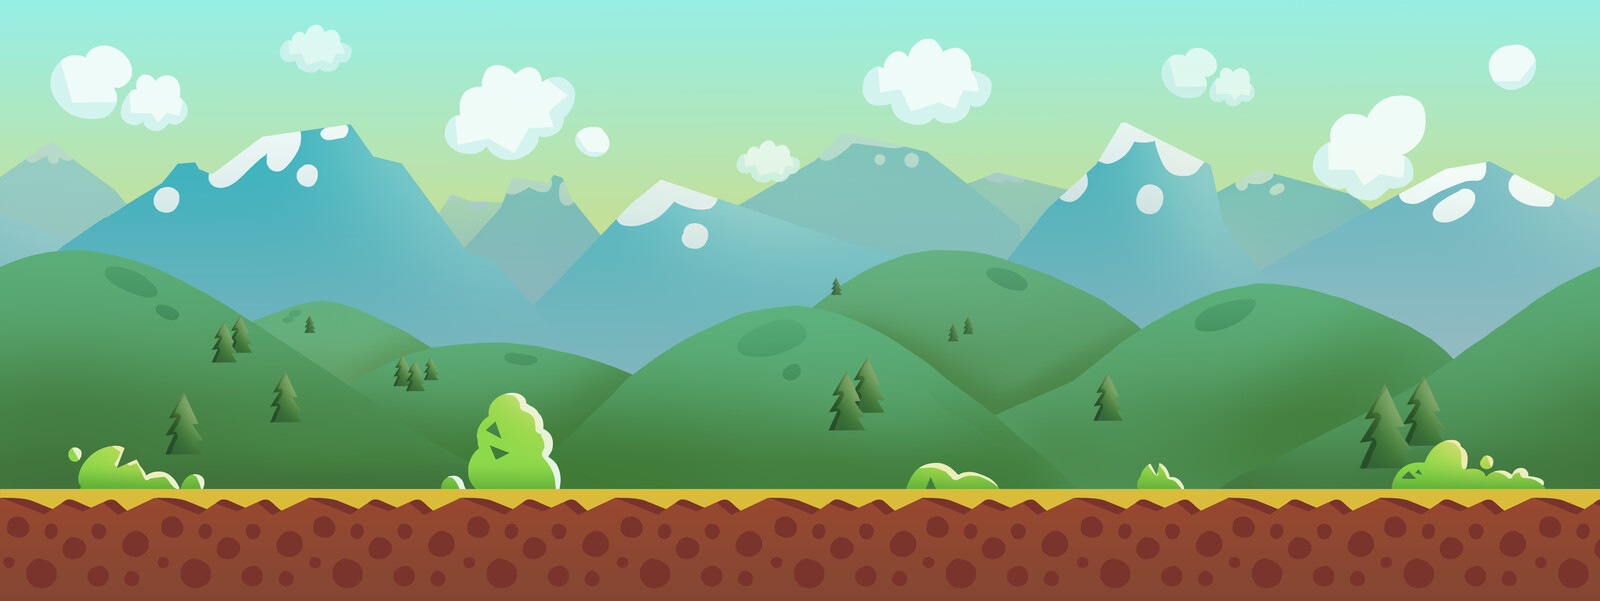 2D side-scroller - backgrounds assets